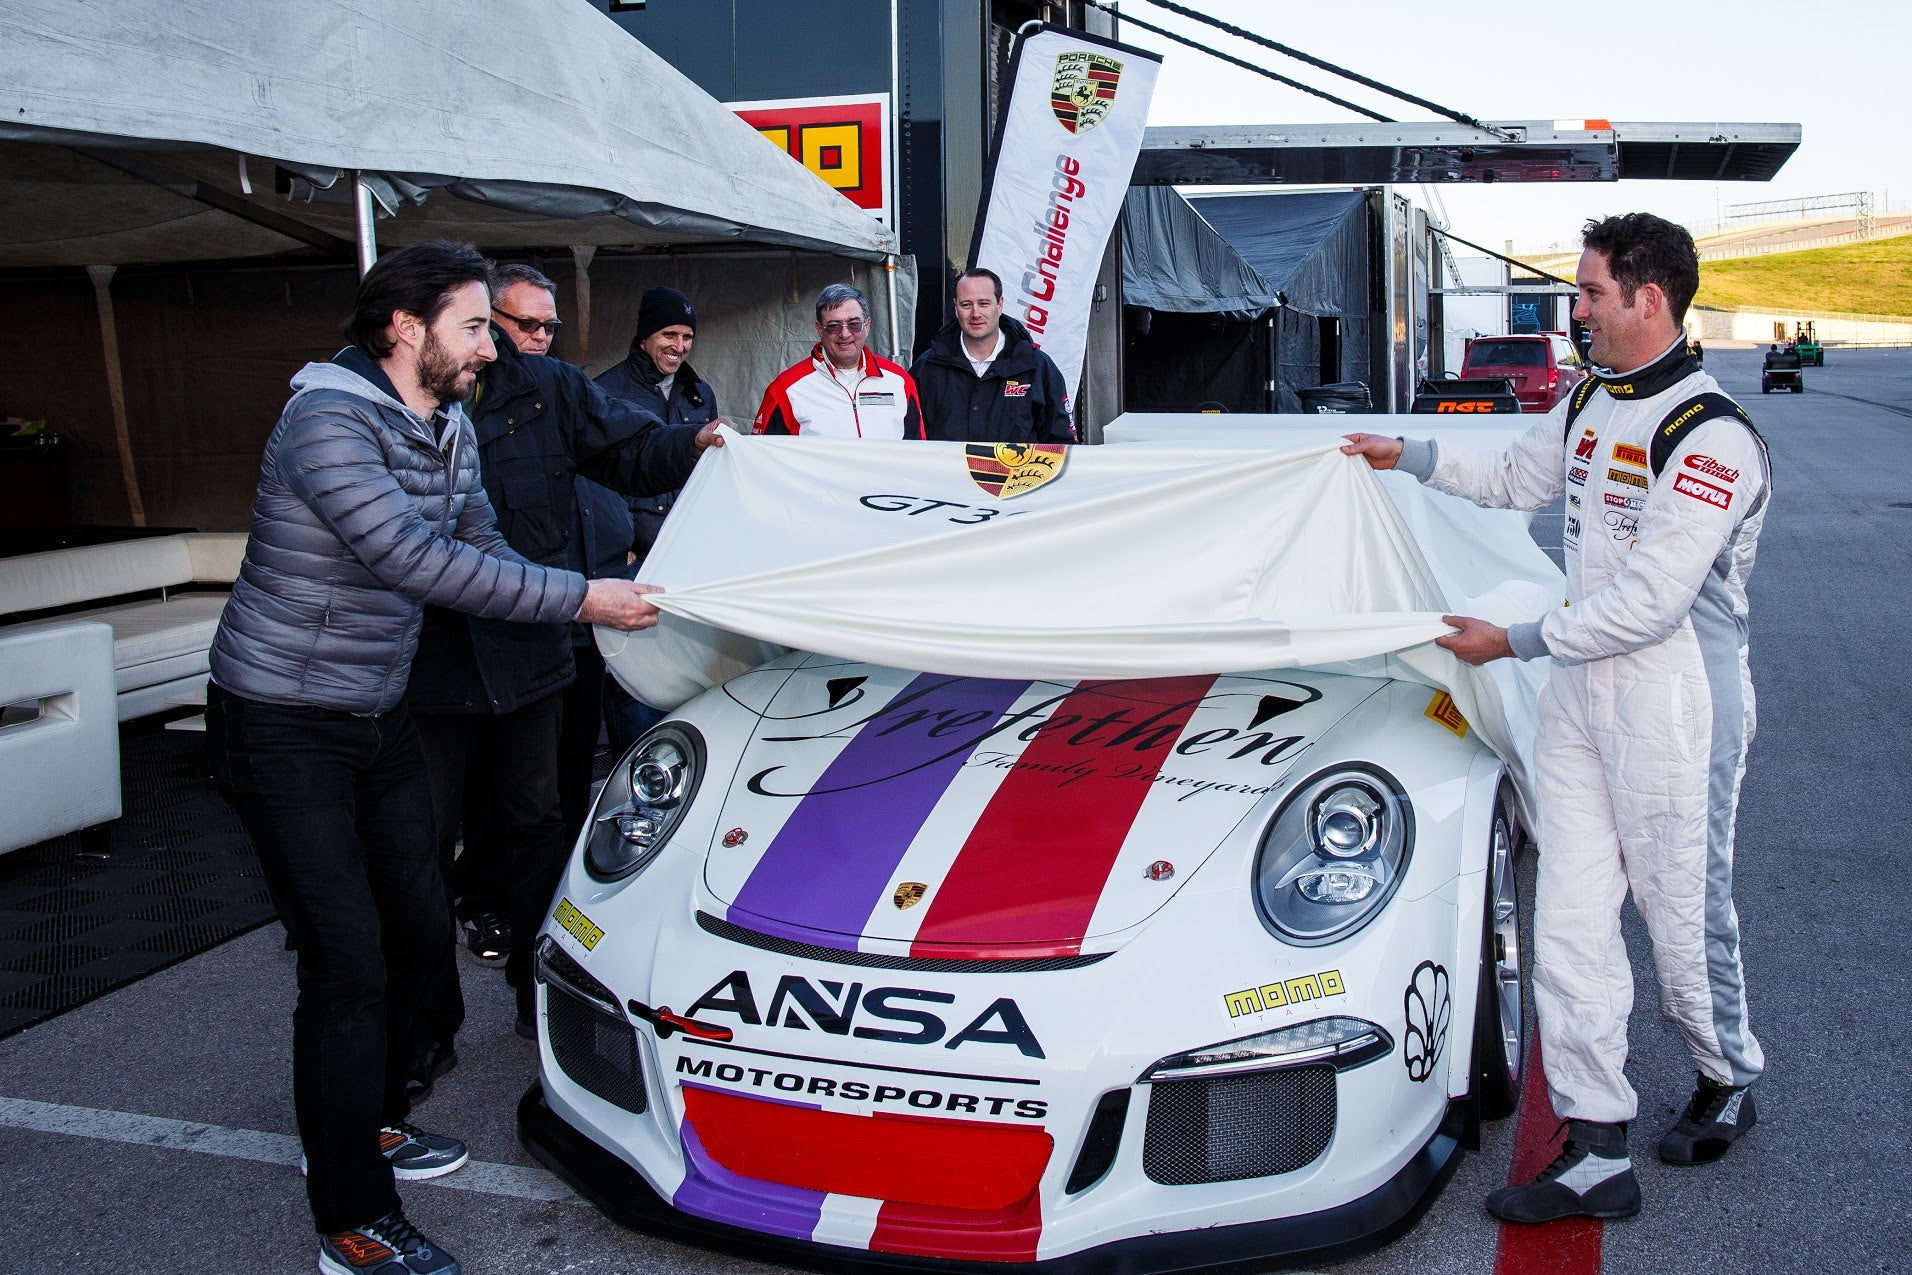 ANSA MOTORSPORTS READY FOR PIRELLI WORLD CHALLENGE DEBUT